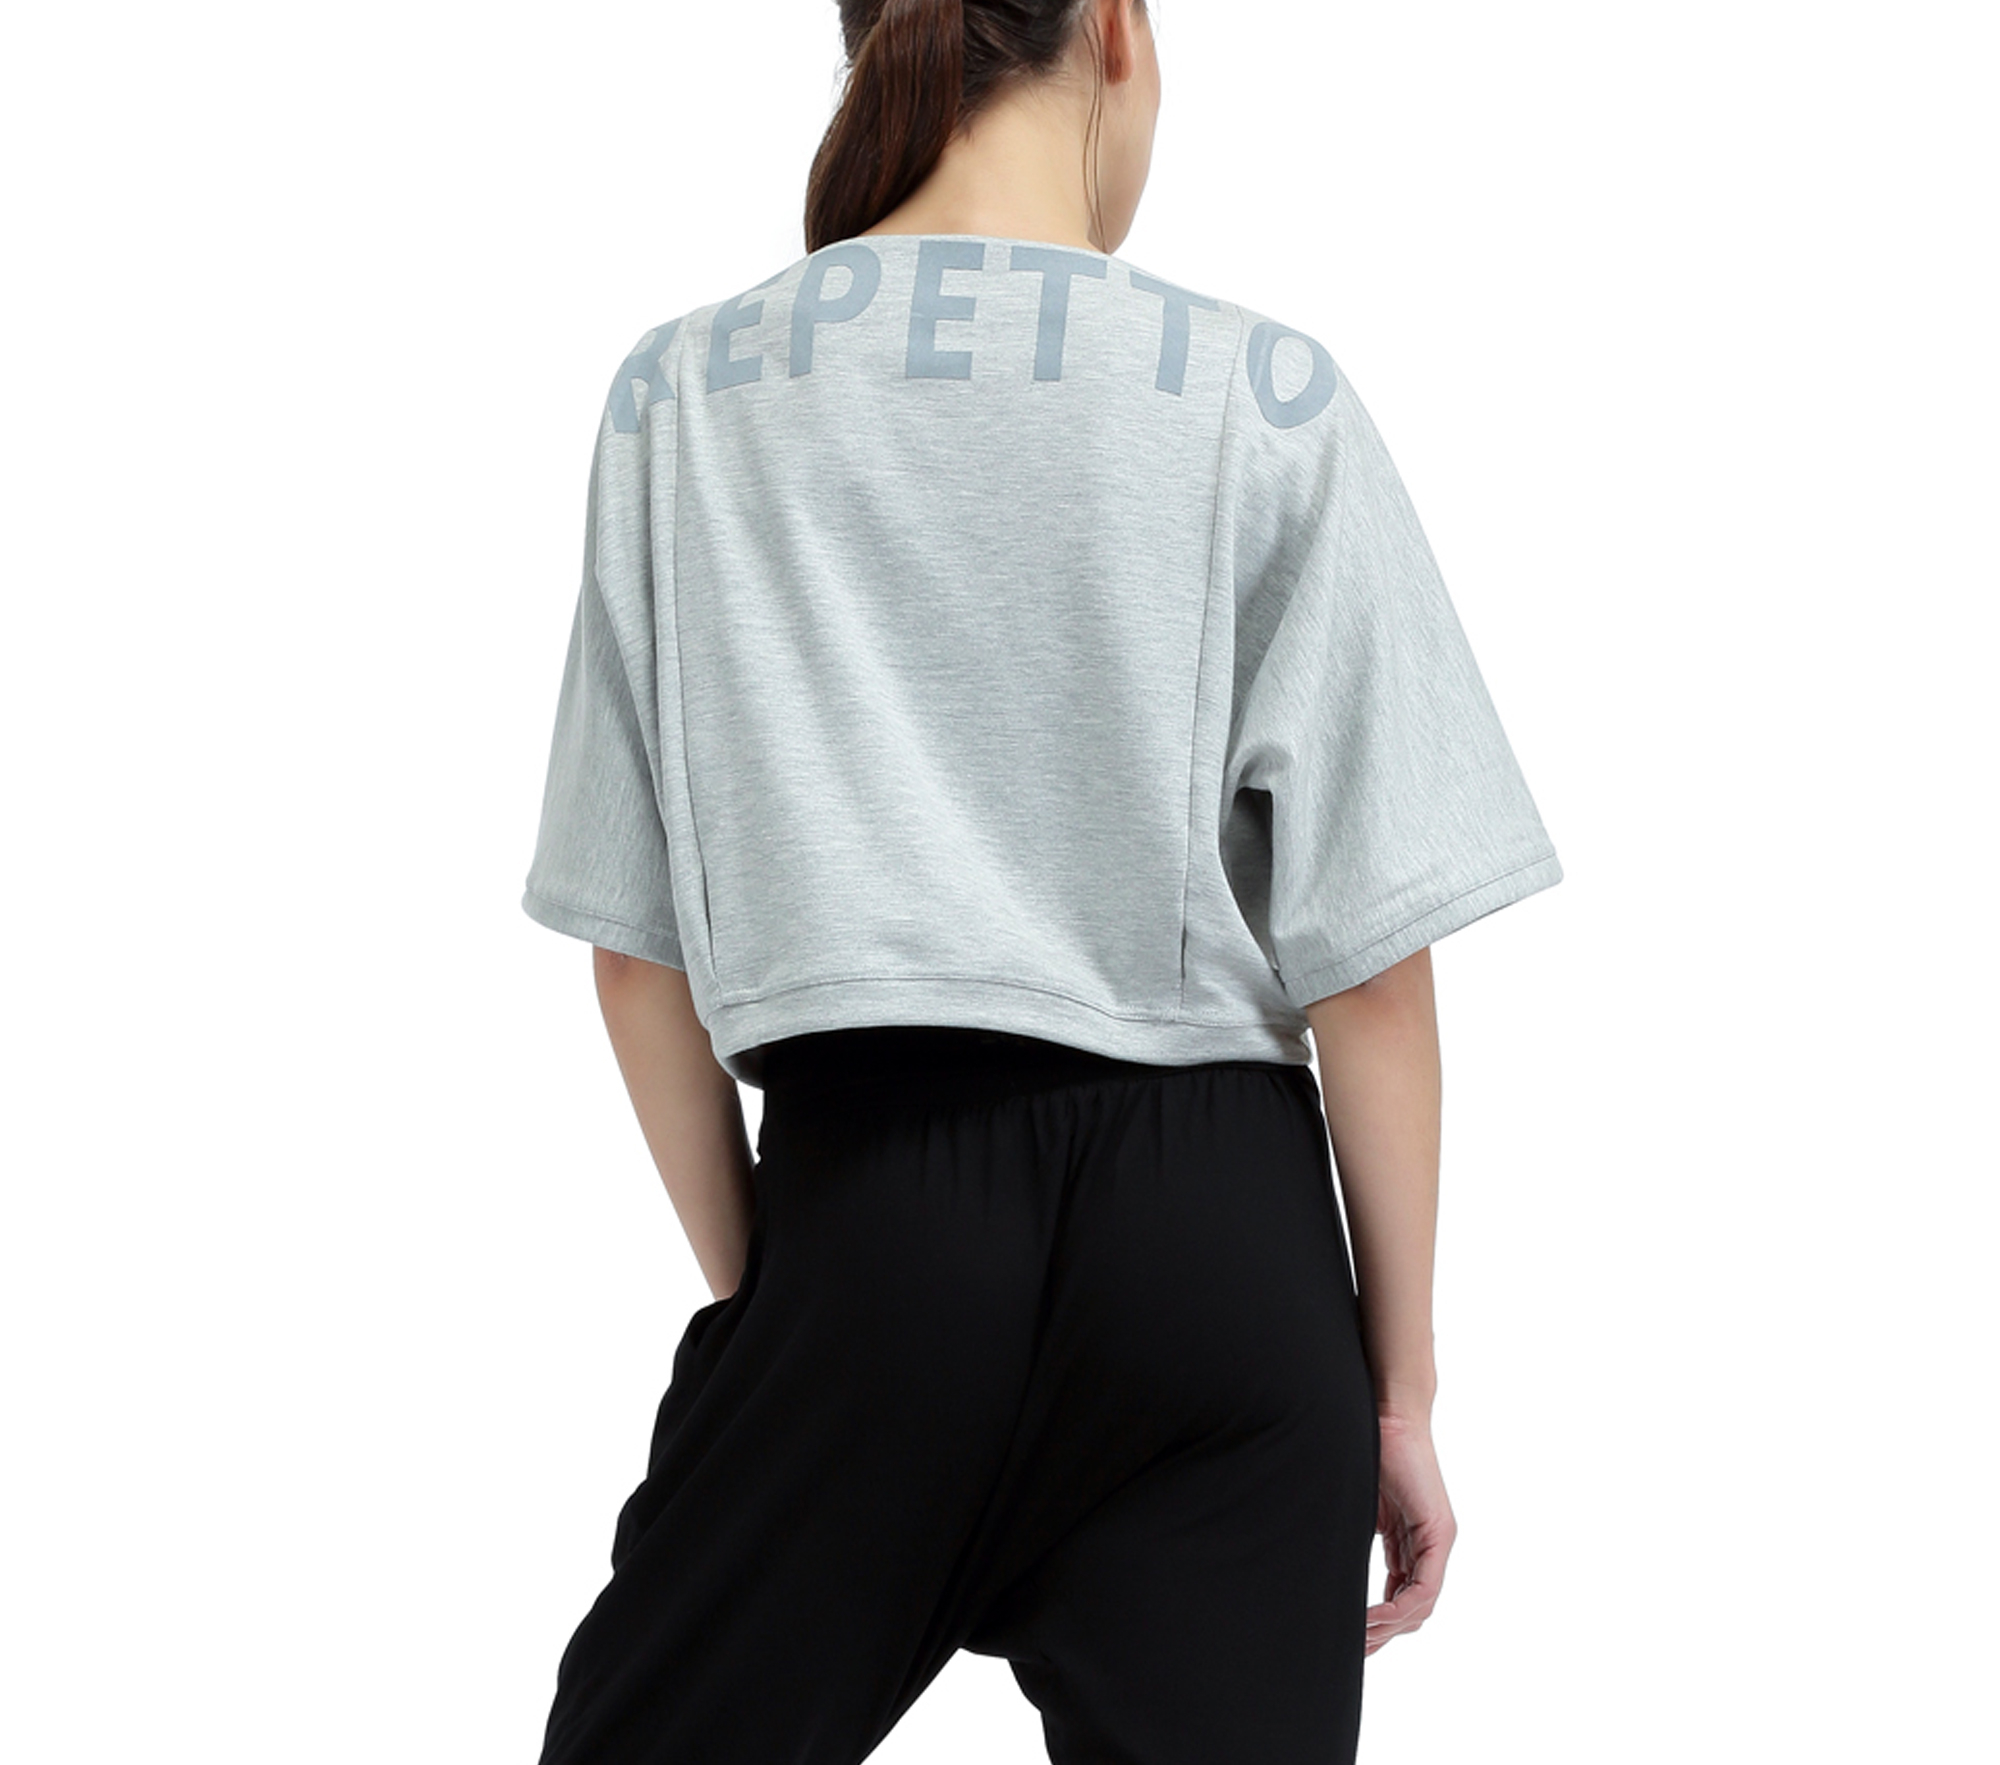 Sweat Repetto